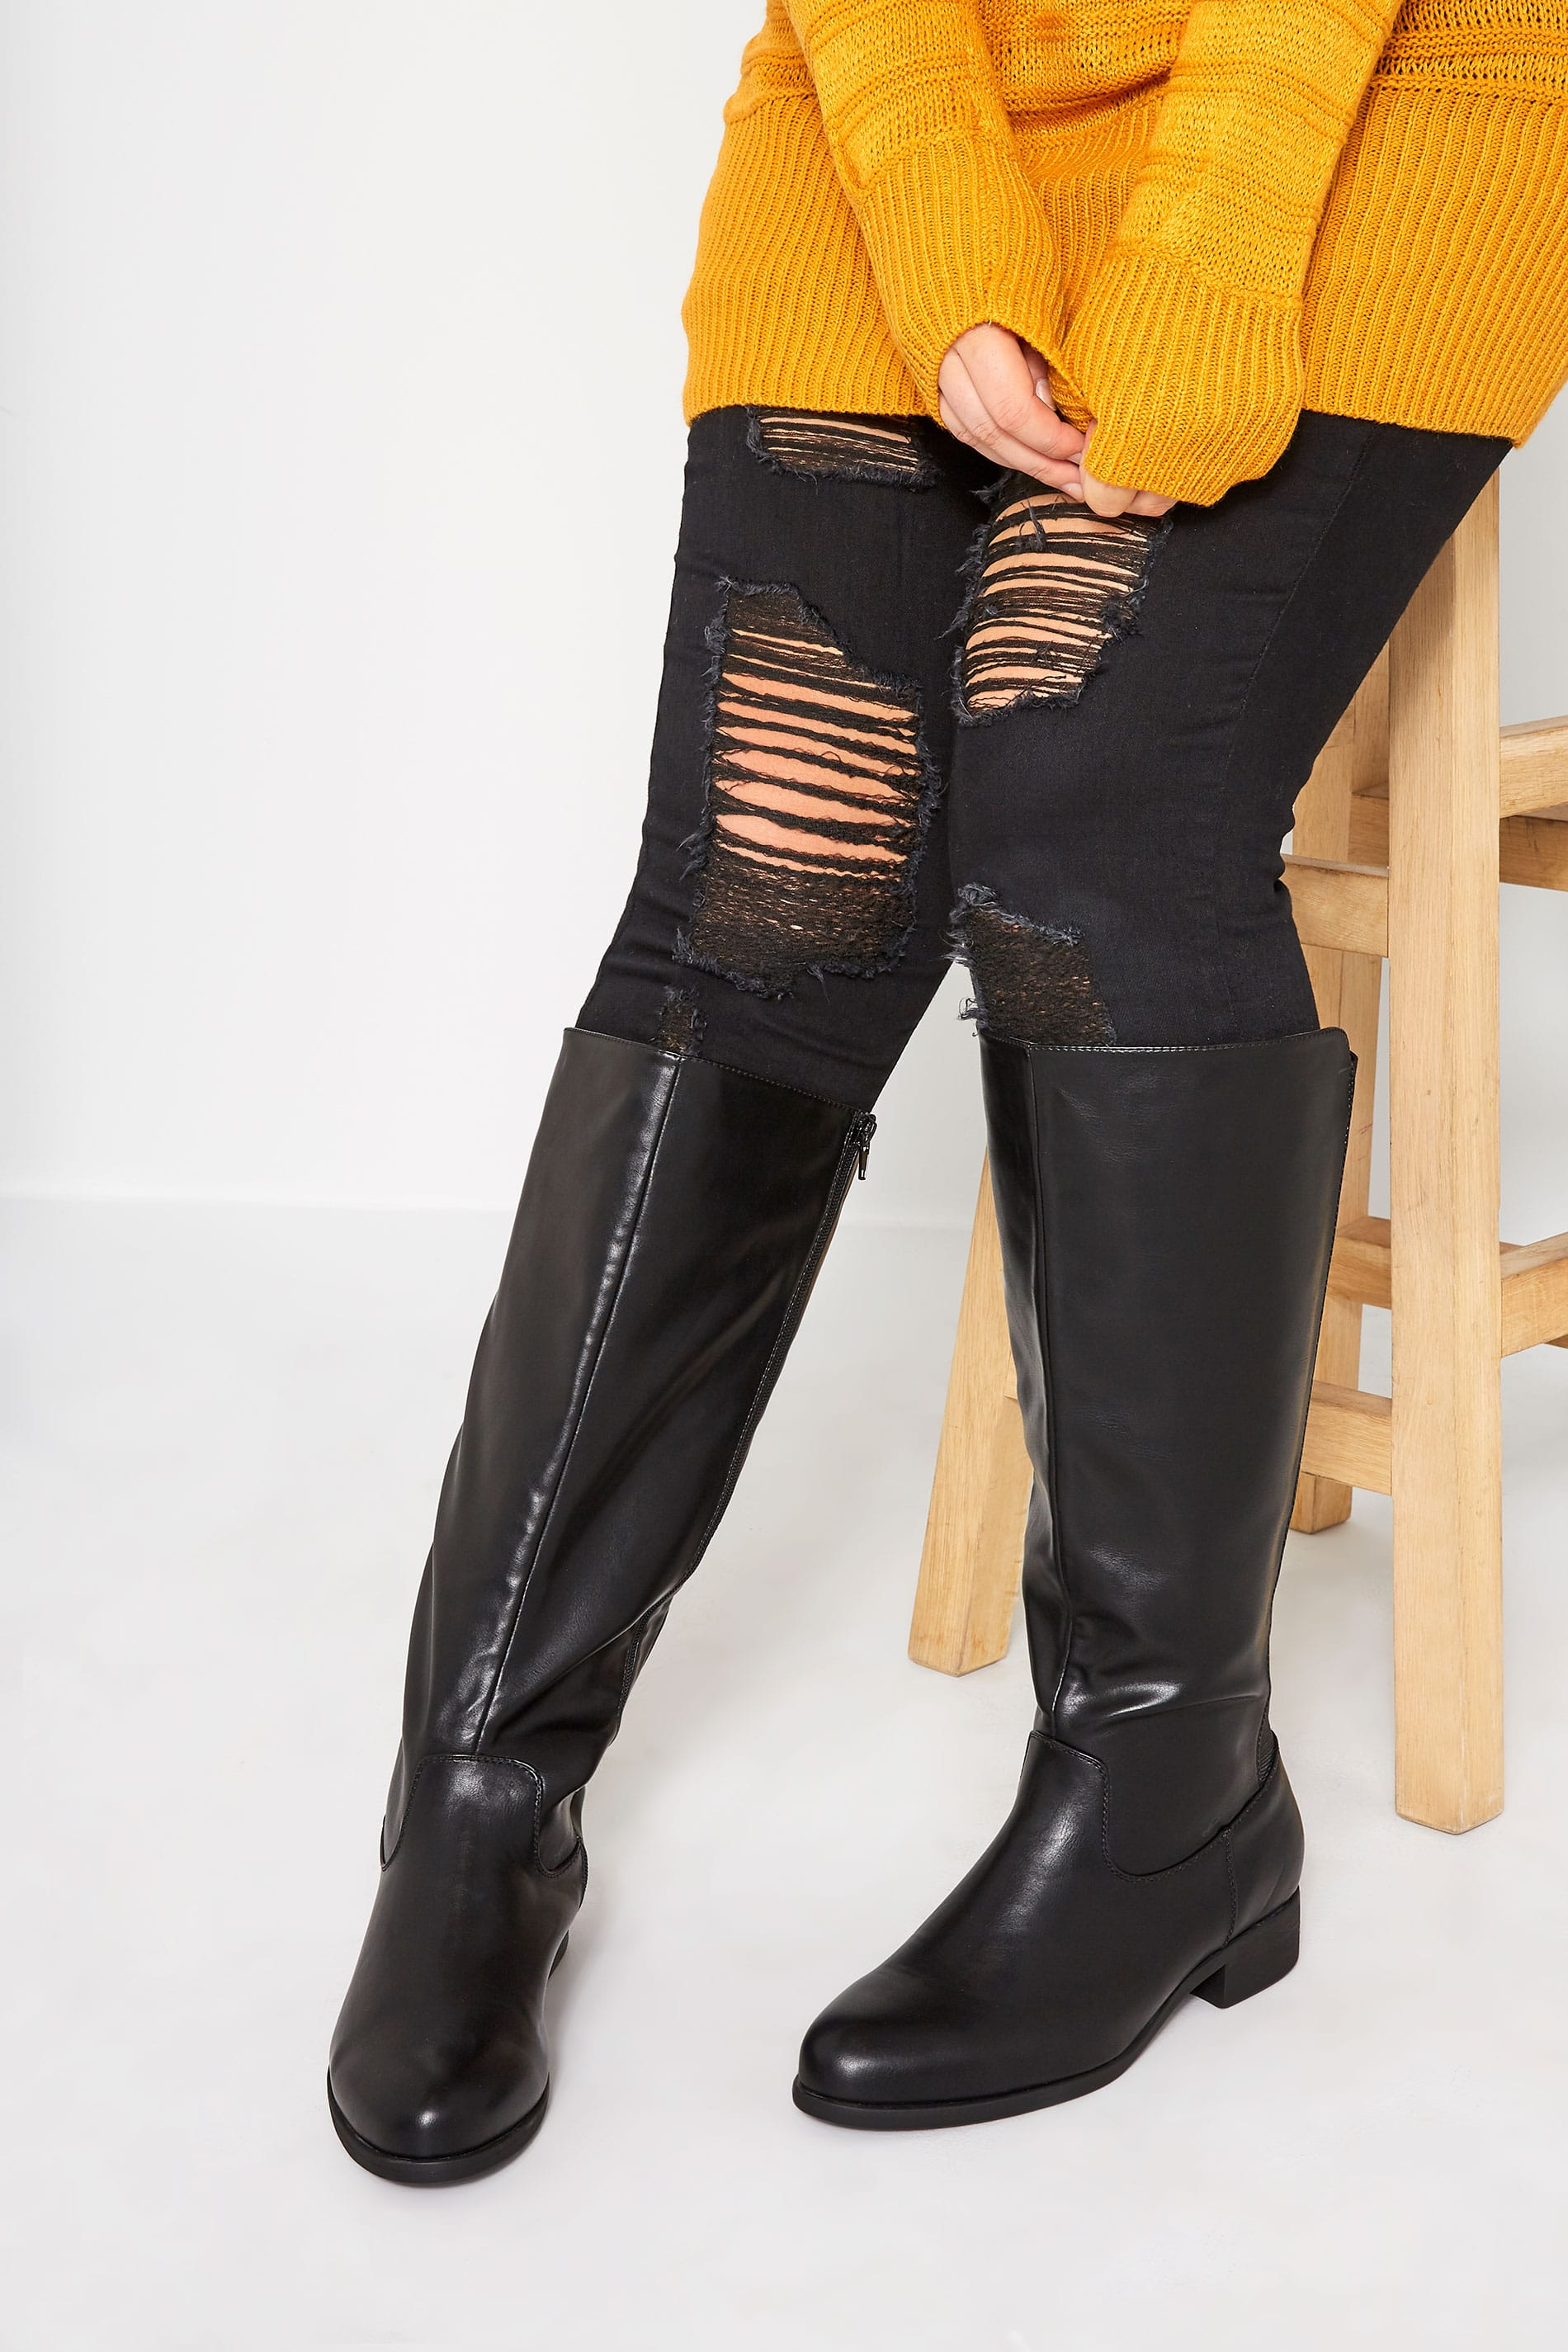 Black XL Calf Knee High Boots In Extra Wide Fit